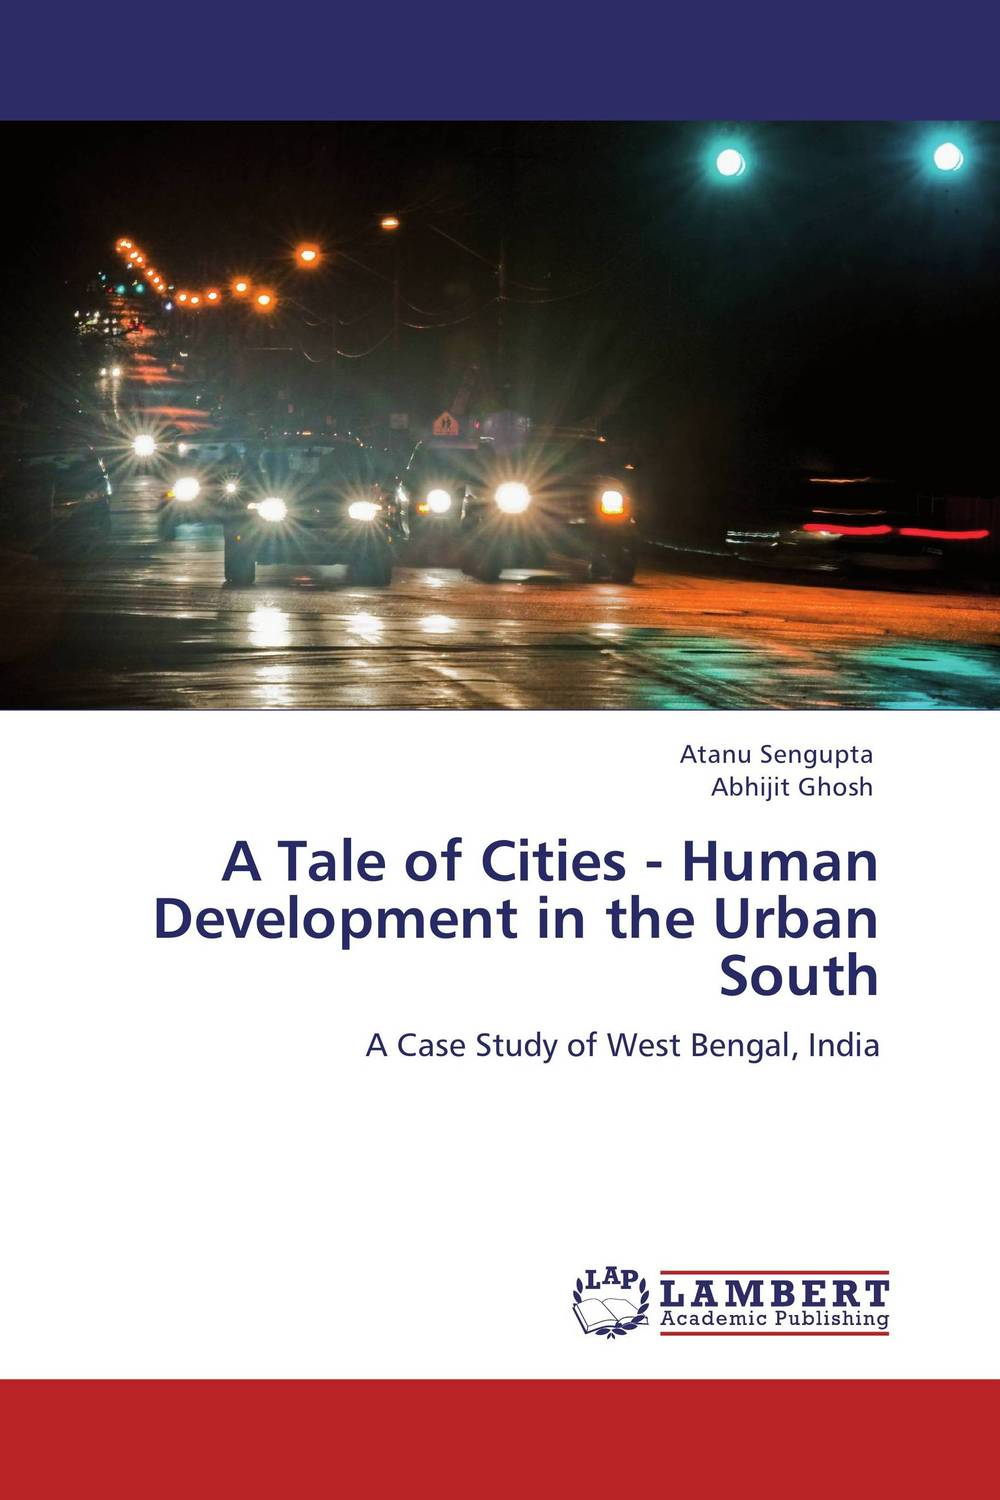 A Tale of Cities - Human Development in the Urban South wild life or adventures on the frontier a tale of the early days of the texas republic